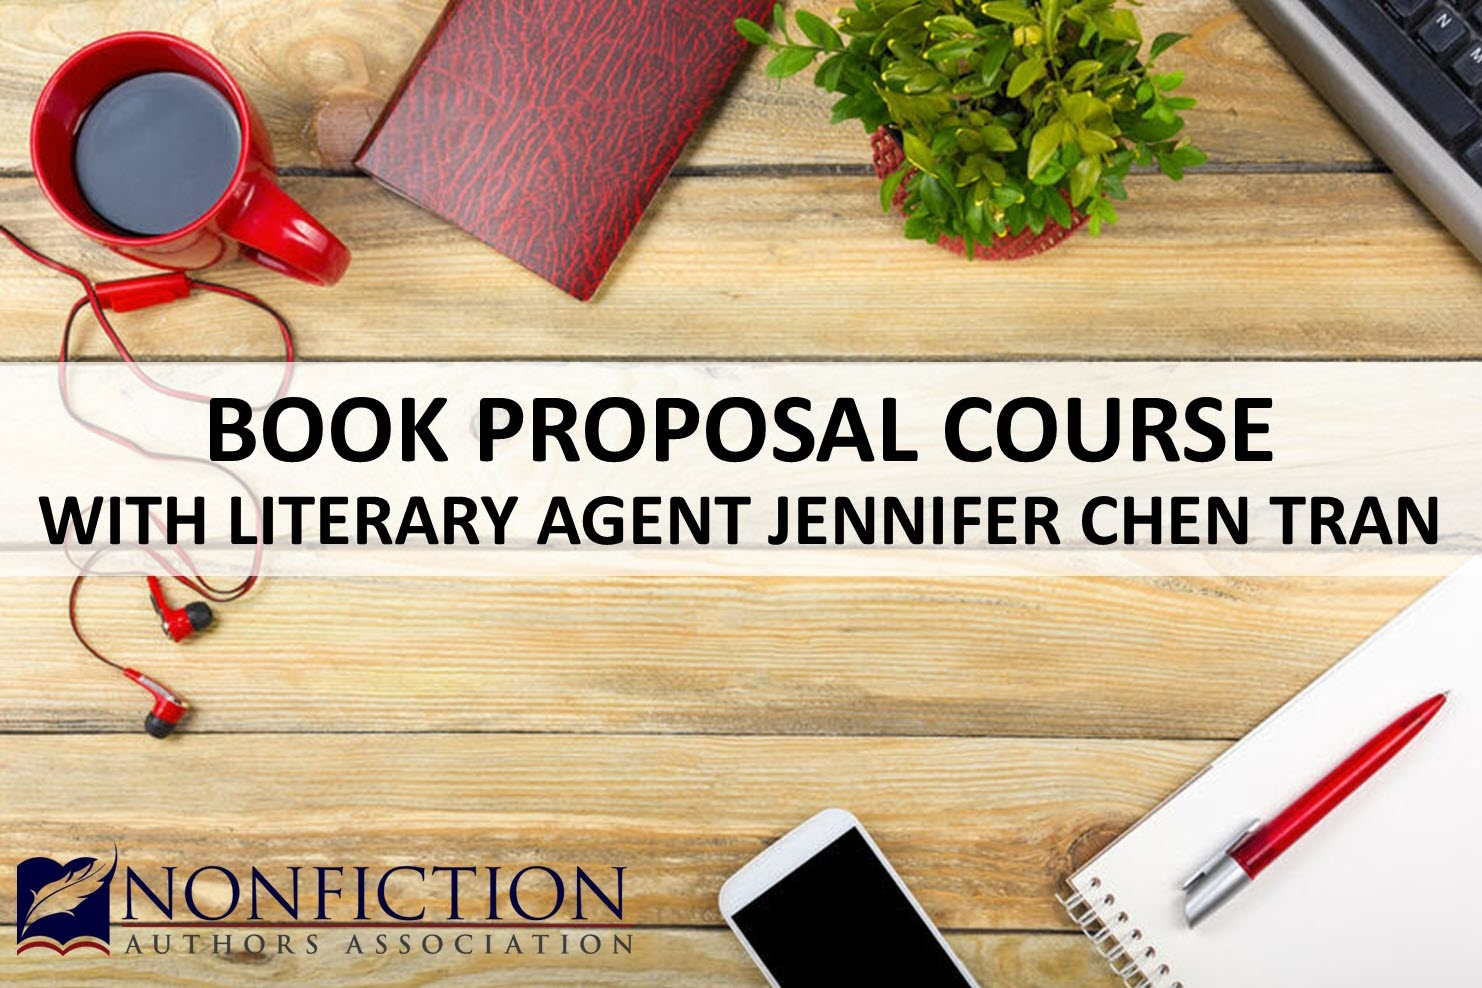 Book Proposal Course